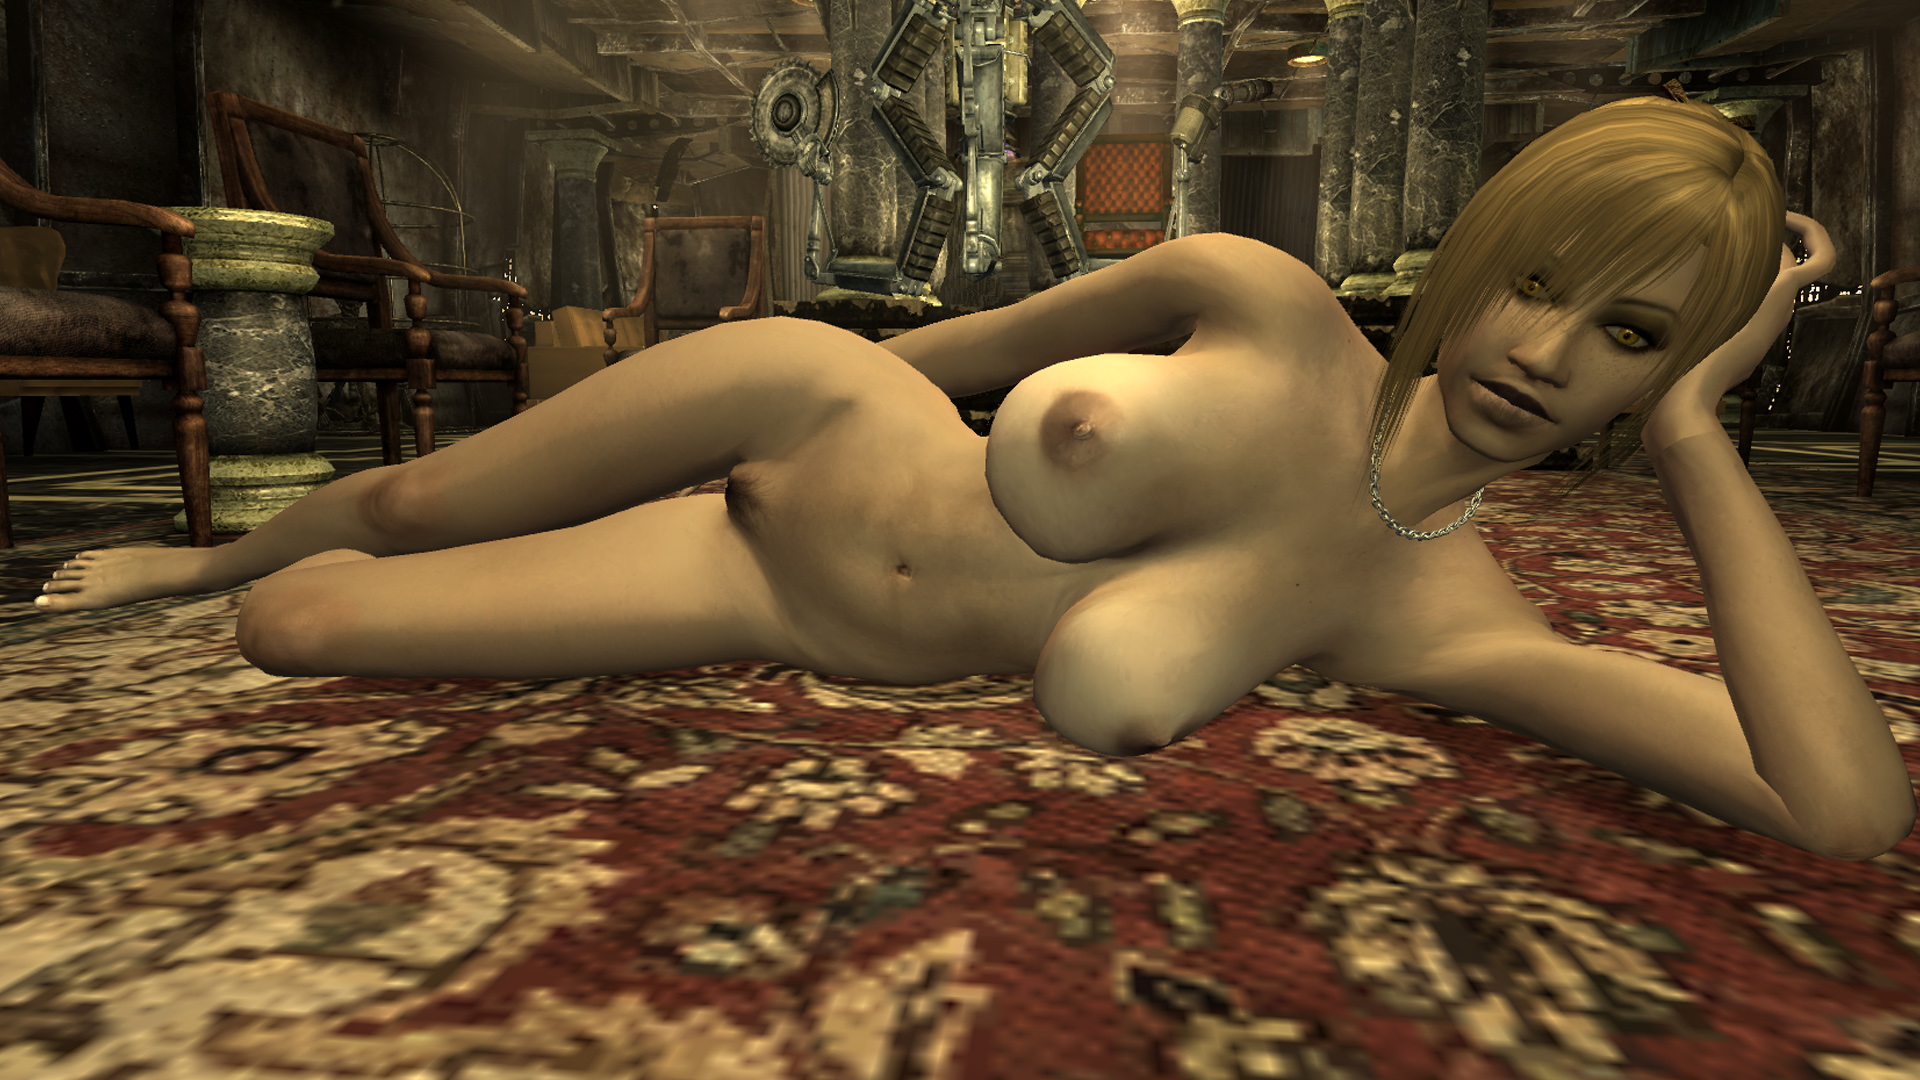 Nude cheats for fallout 3 erotic movies